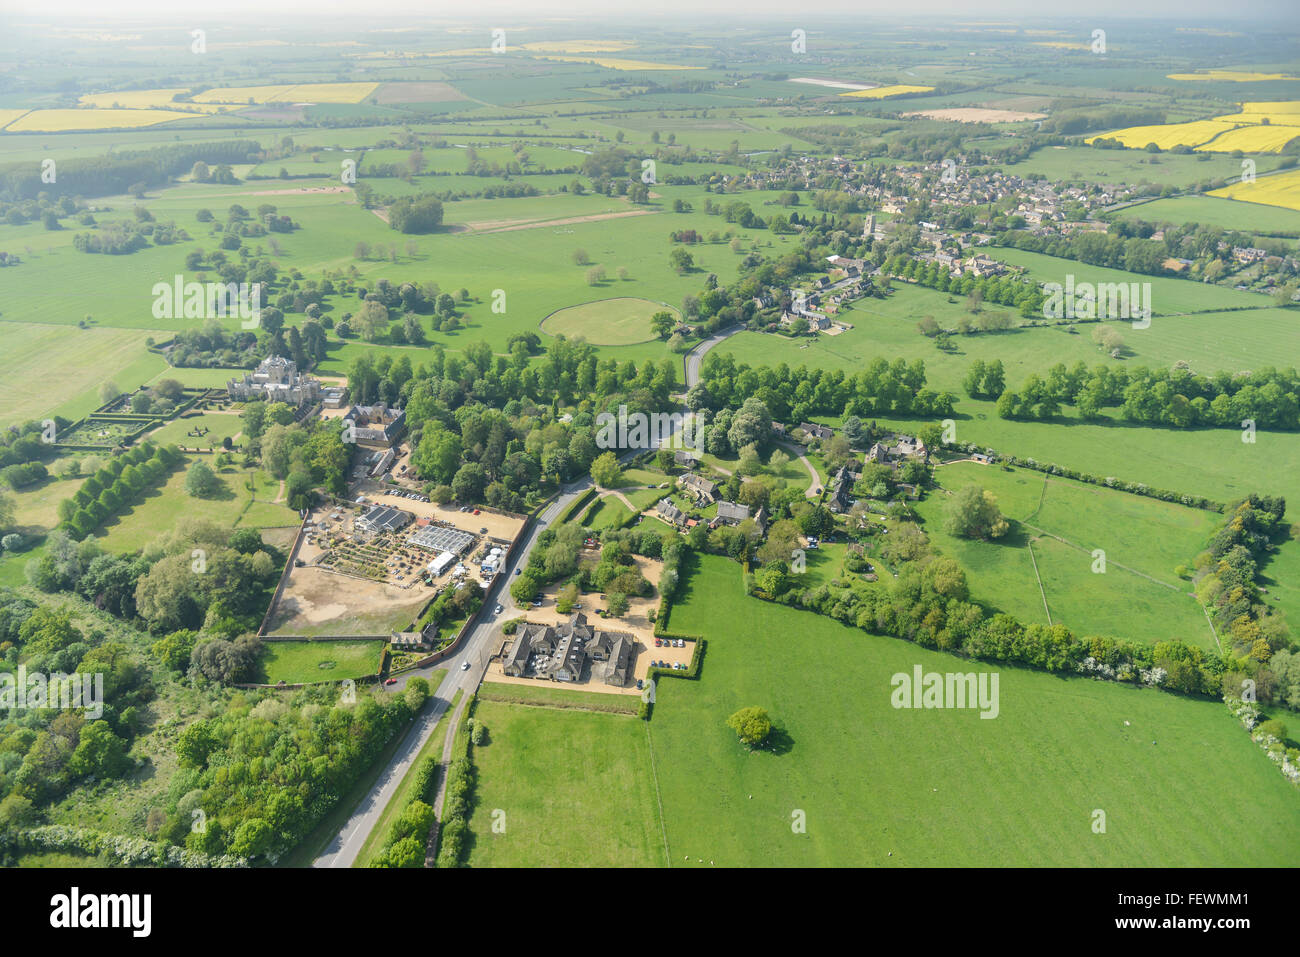 General views of the English countryside near to the Cambridgeshire village of Elton - Stock Image